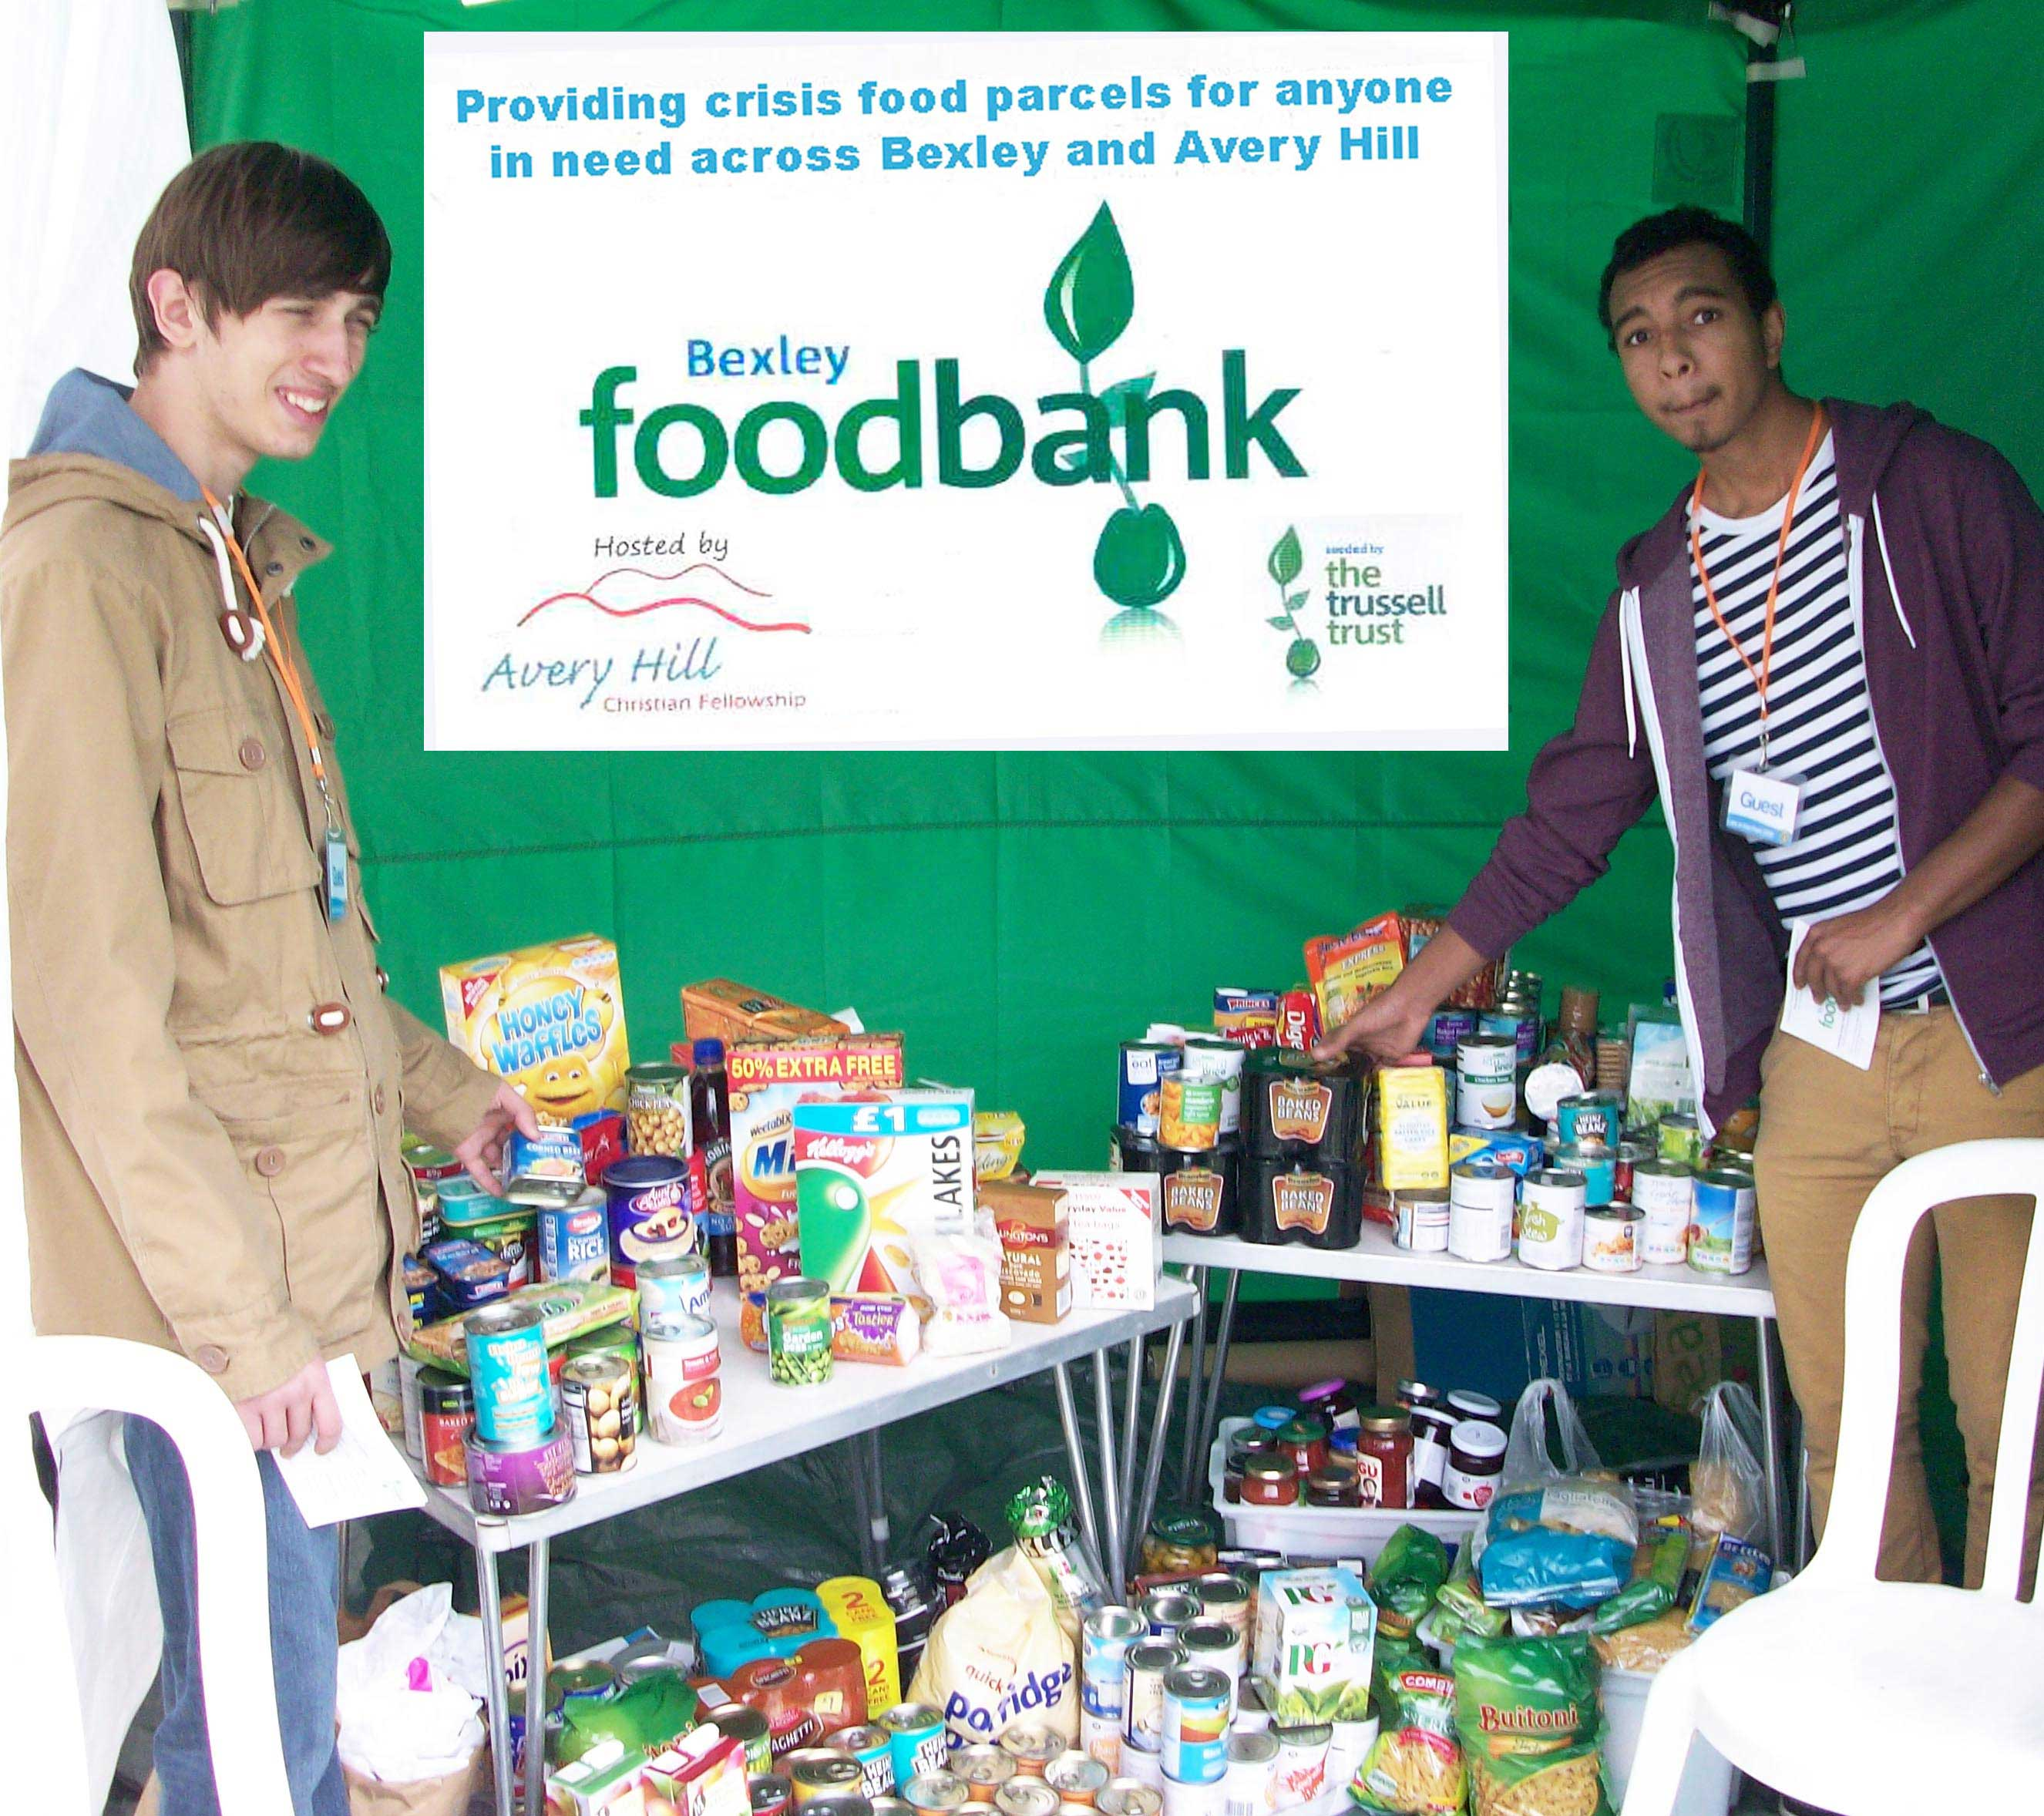 Bexley Foodbank at Avery Hill Christian Fellowship